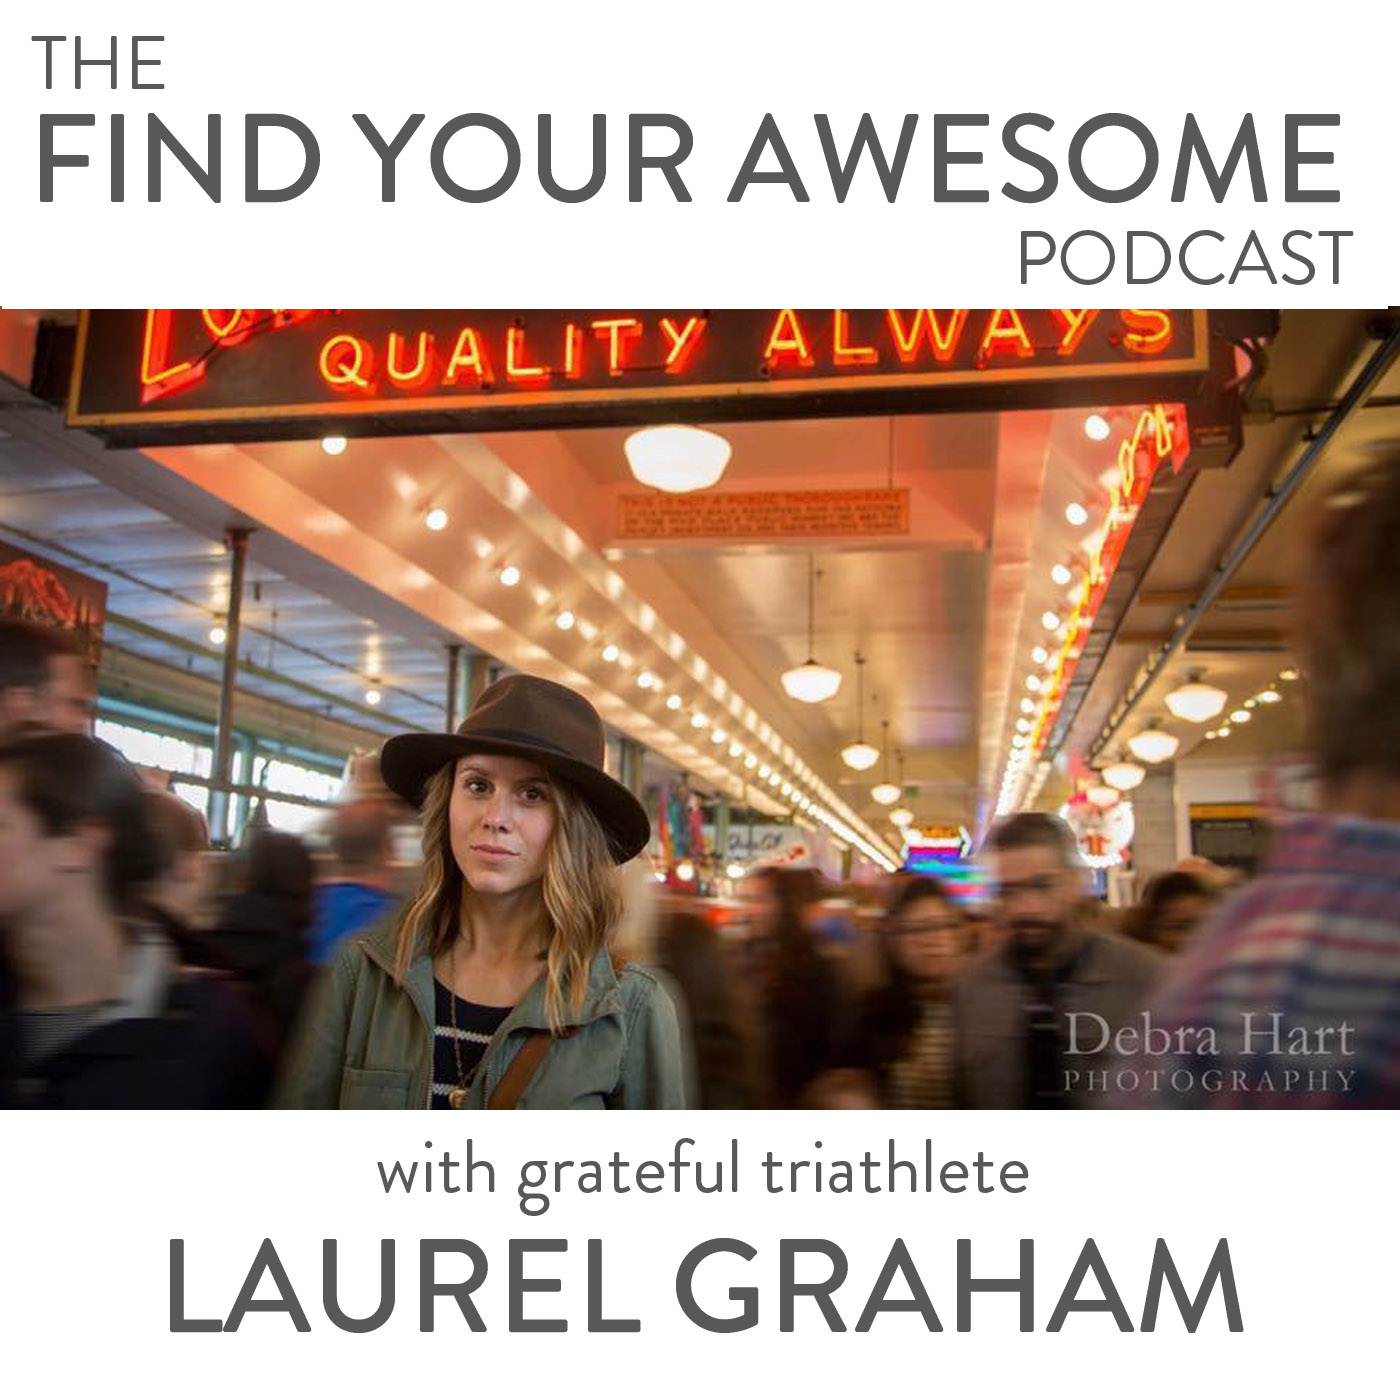 LaurelGraham_podcast_coverart.jpg